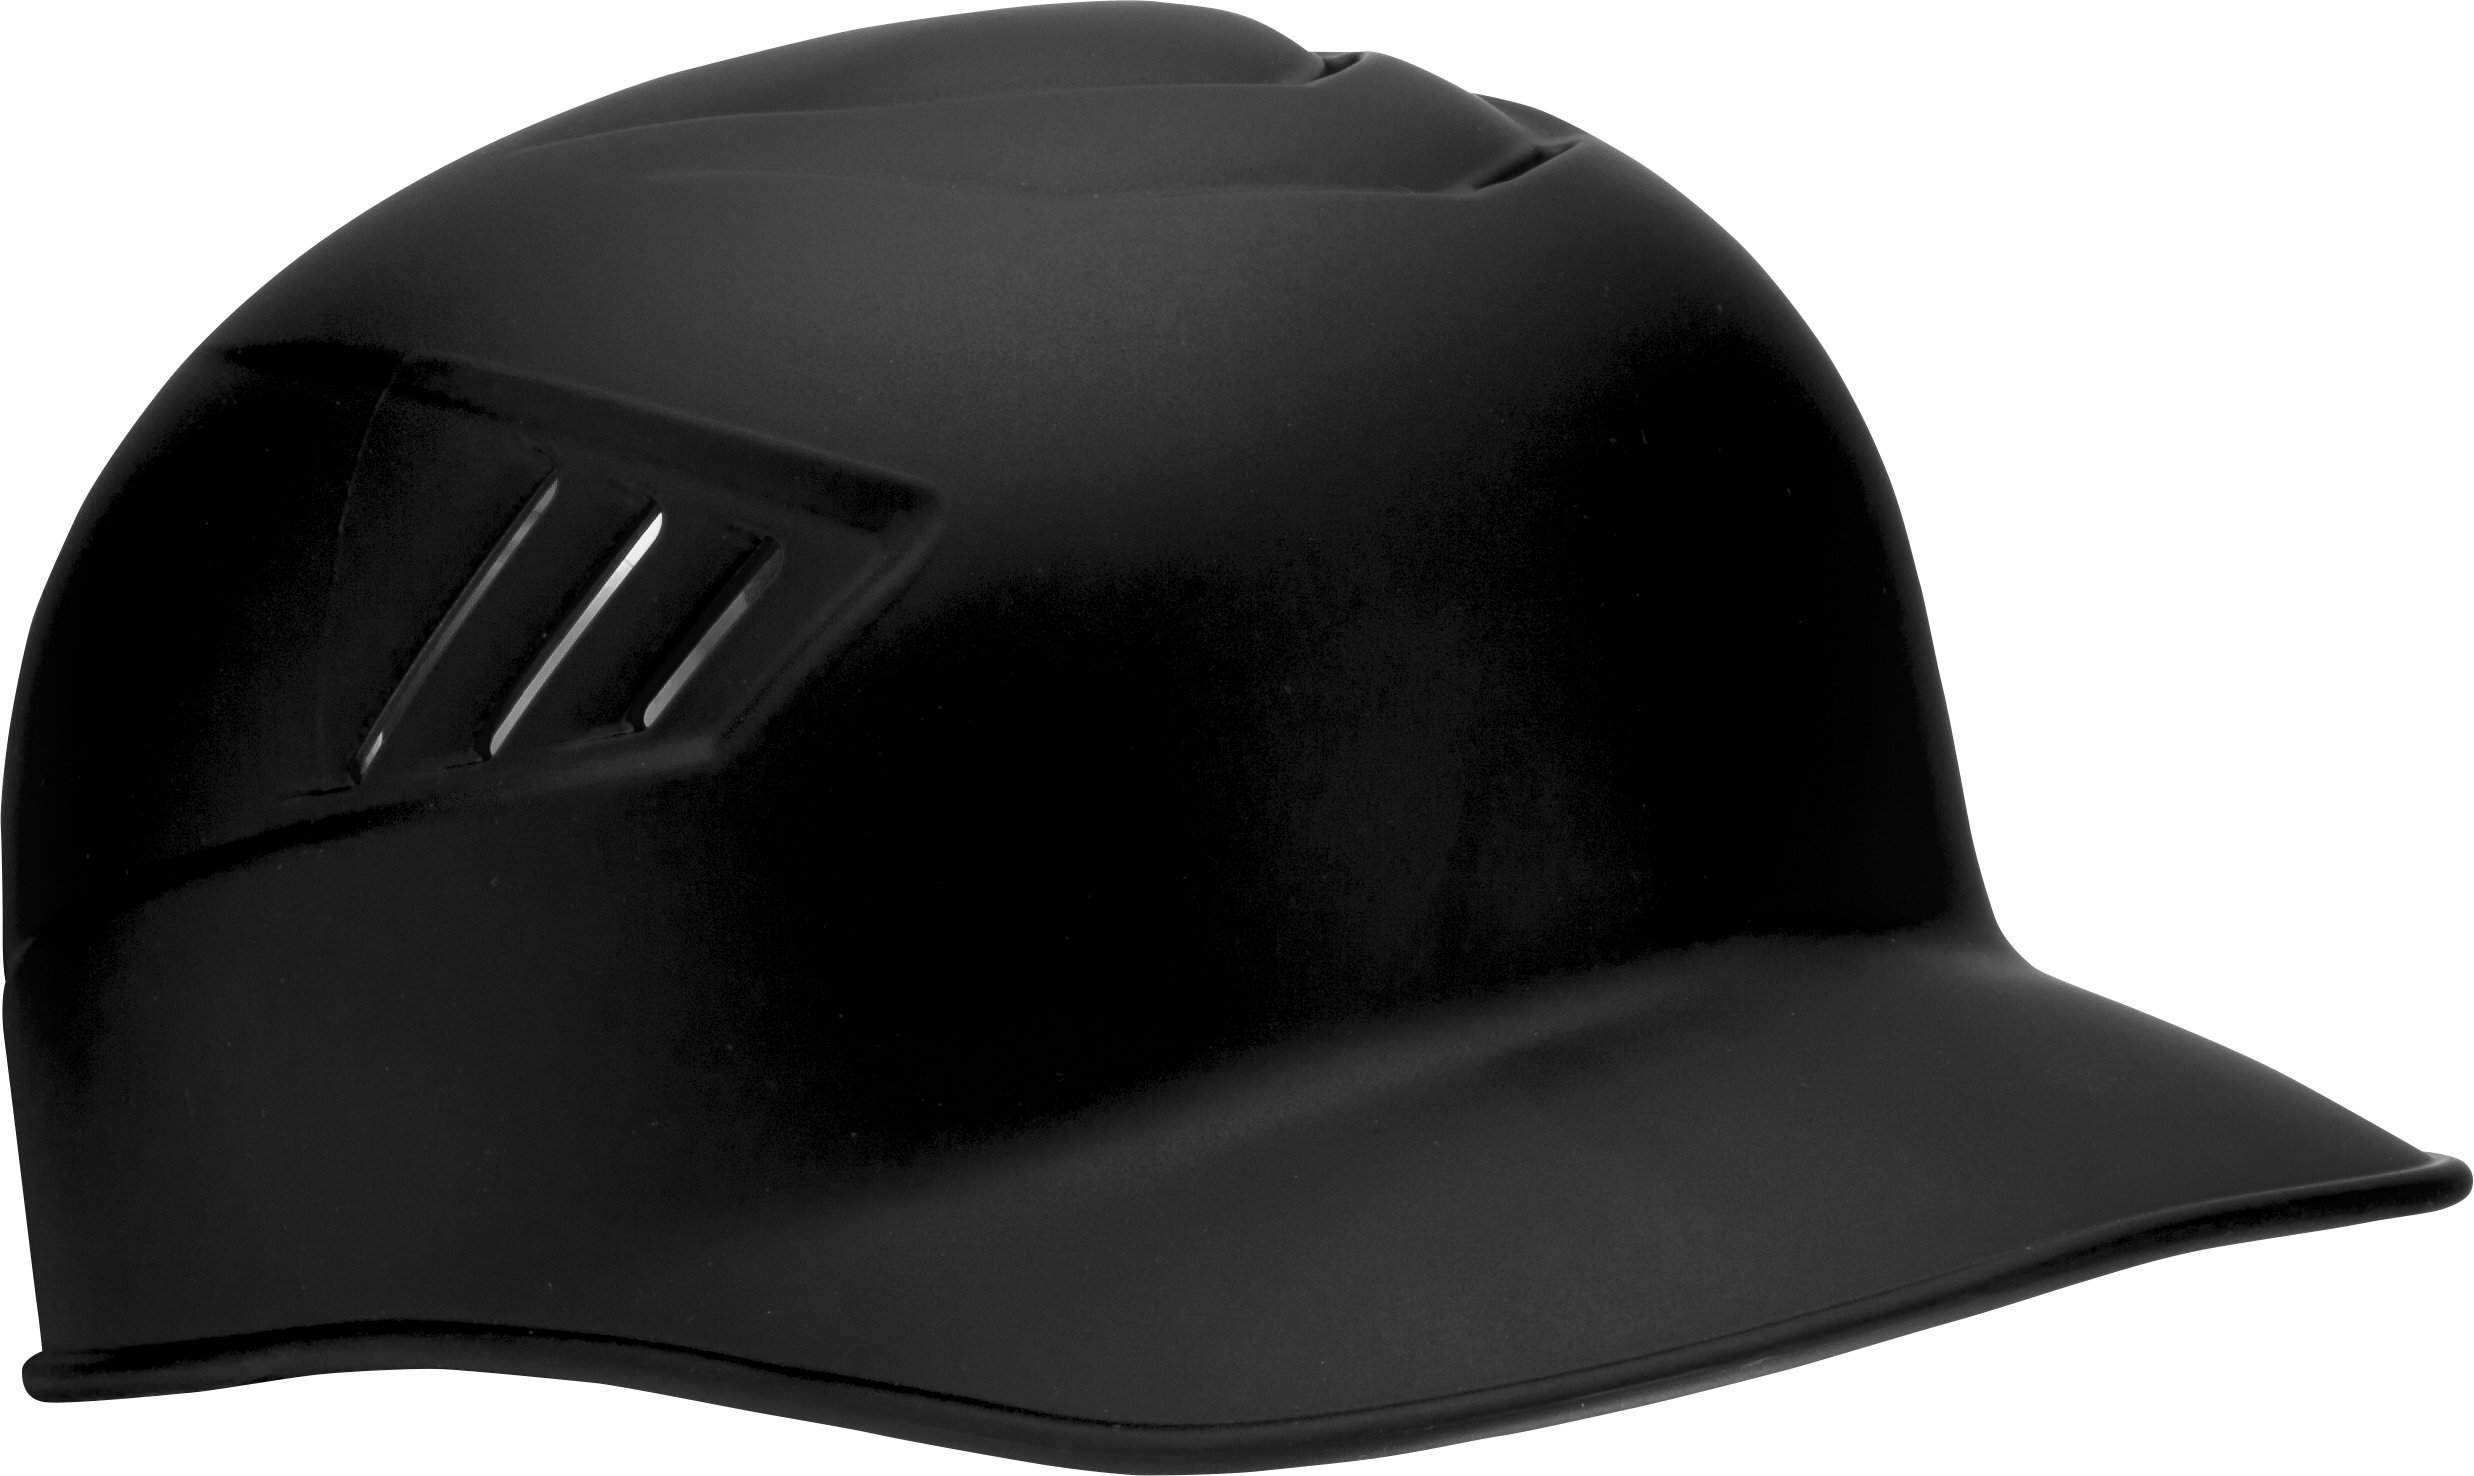 Rawlings Coolflo Matte Style Alpha Sized Base Coach Helmet, Black, Large by Rawlings